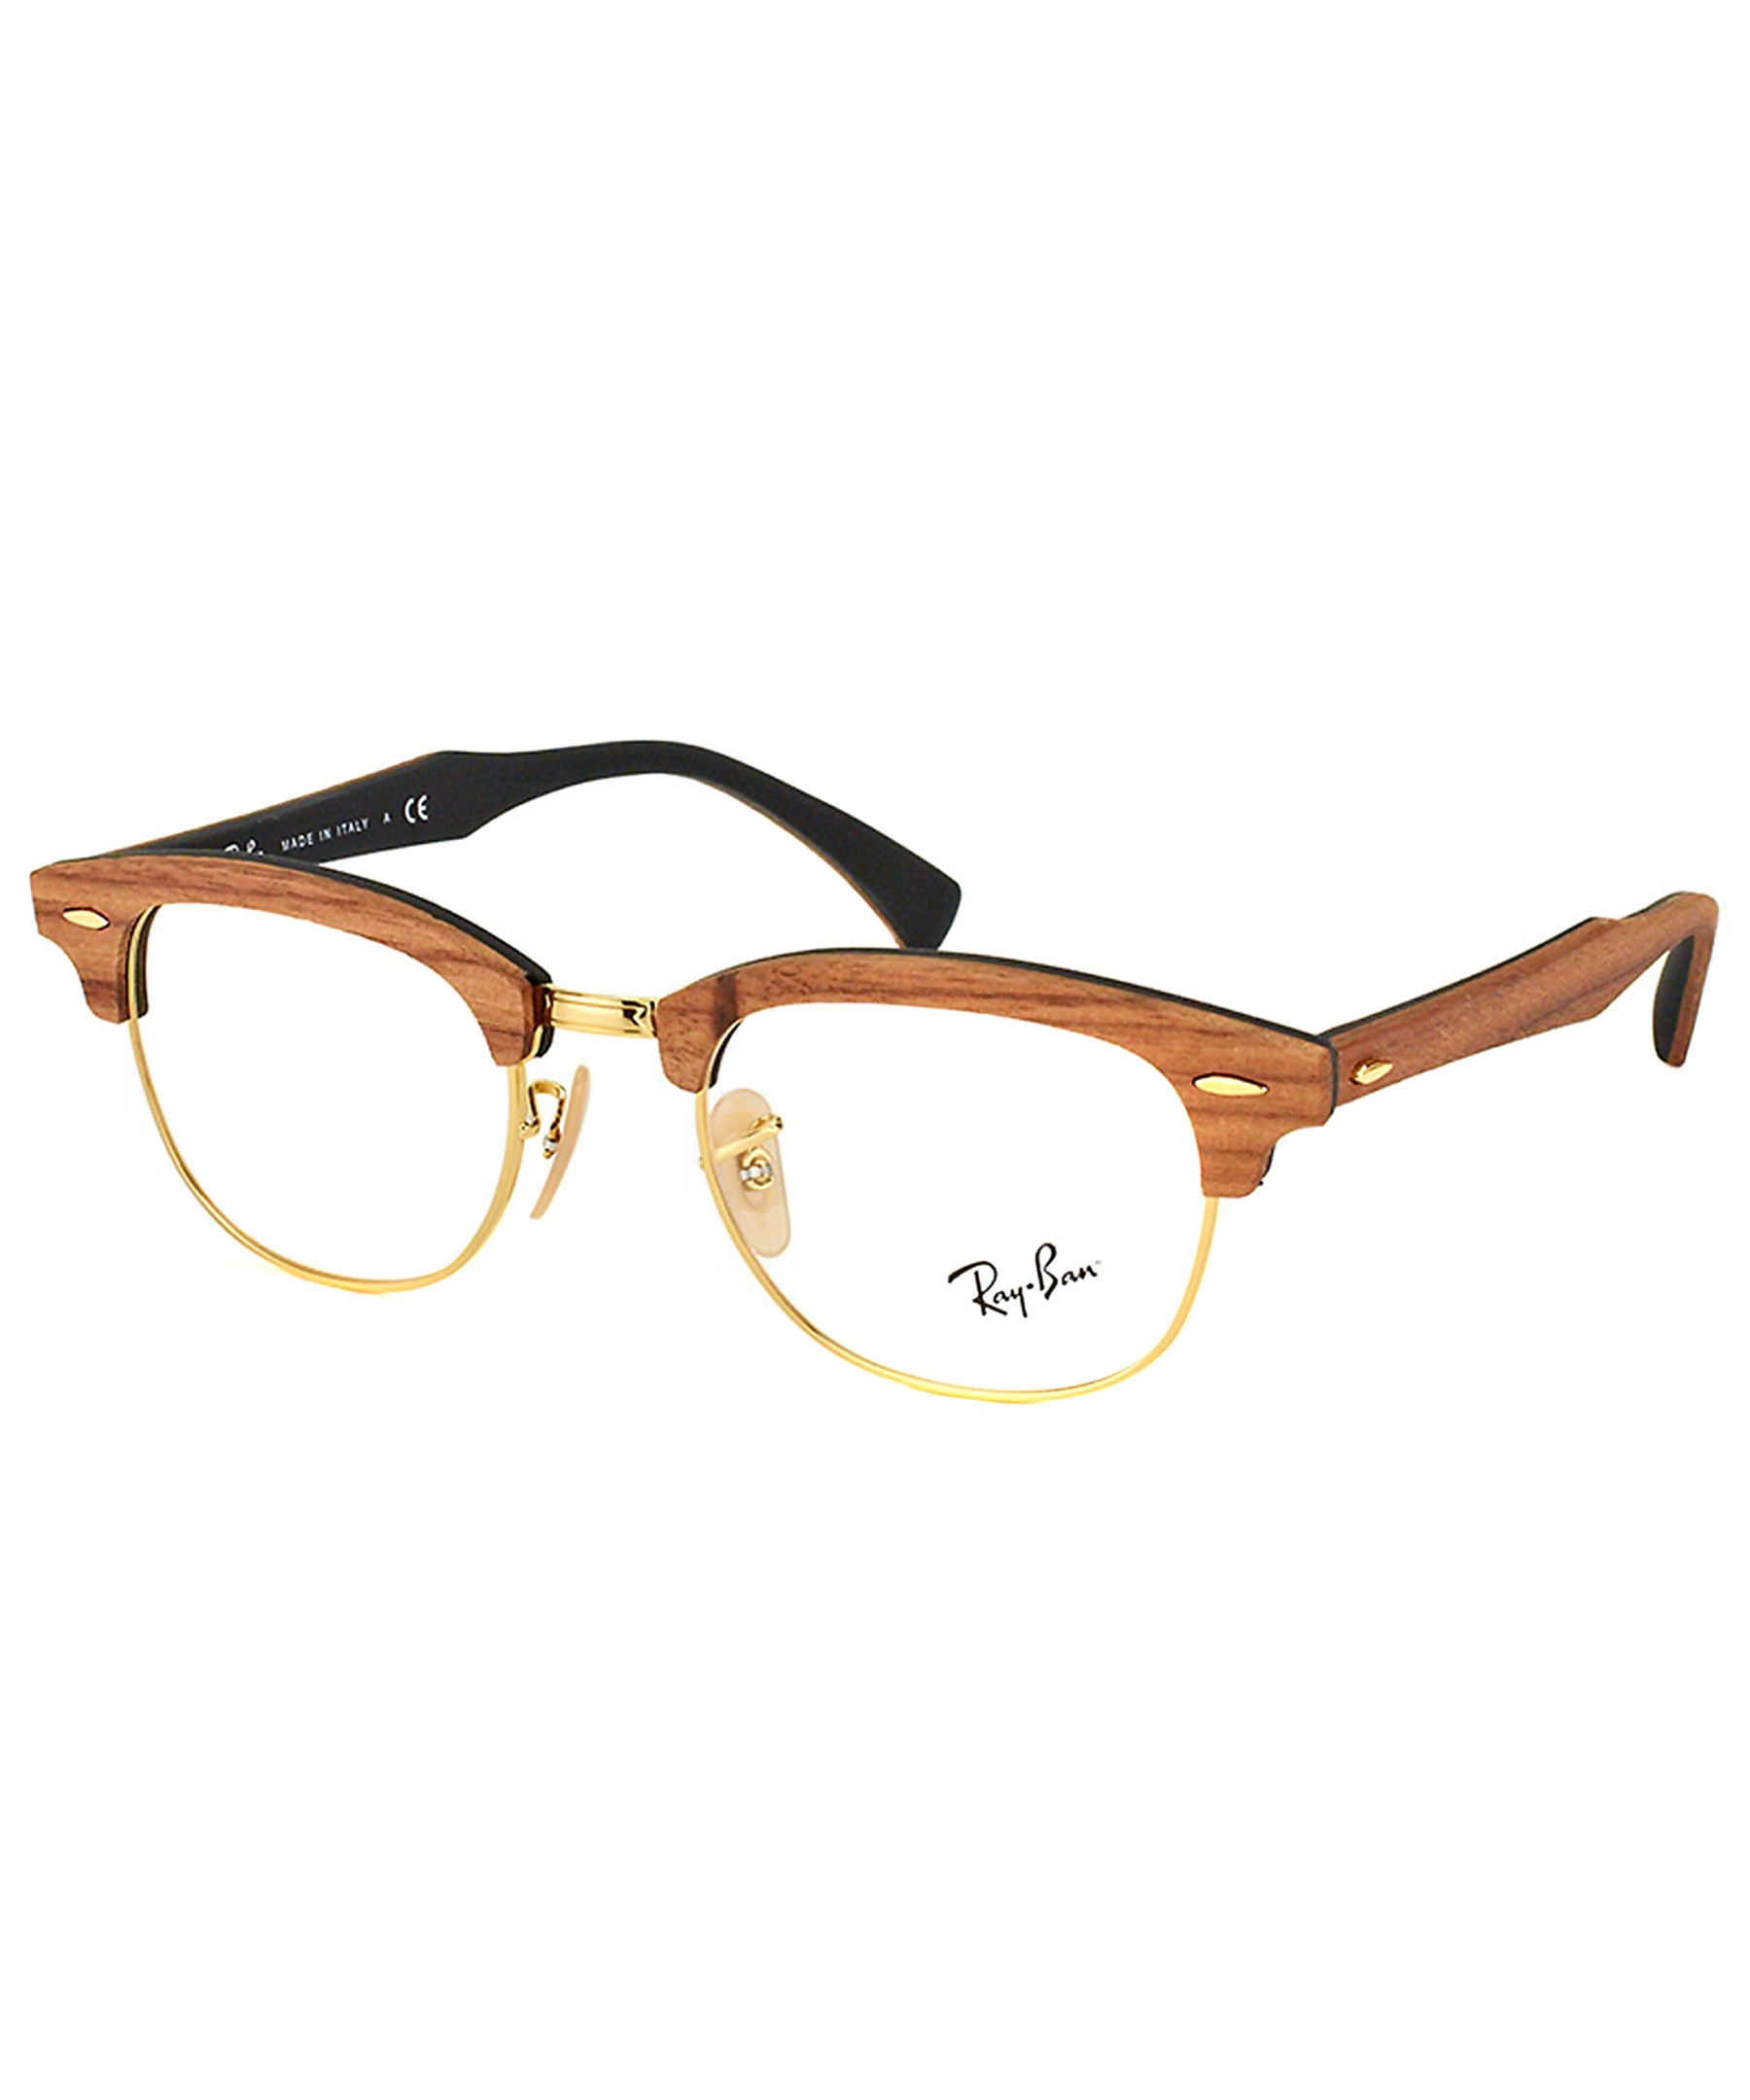 Ray Ban Clubmaster Glasses Frames : Ray-ban Clubmaster Wood Eyeglasses in Brown Lyst